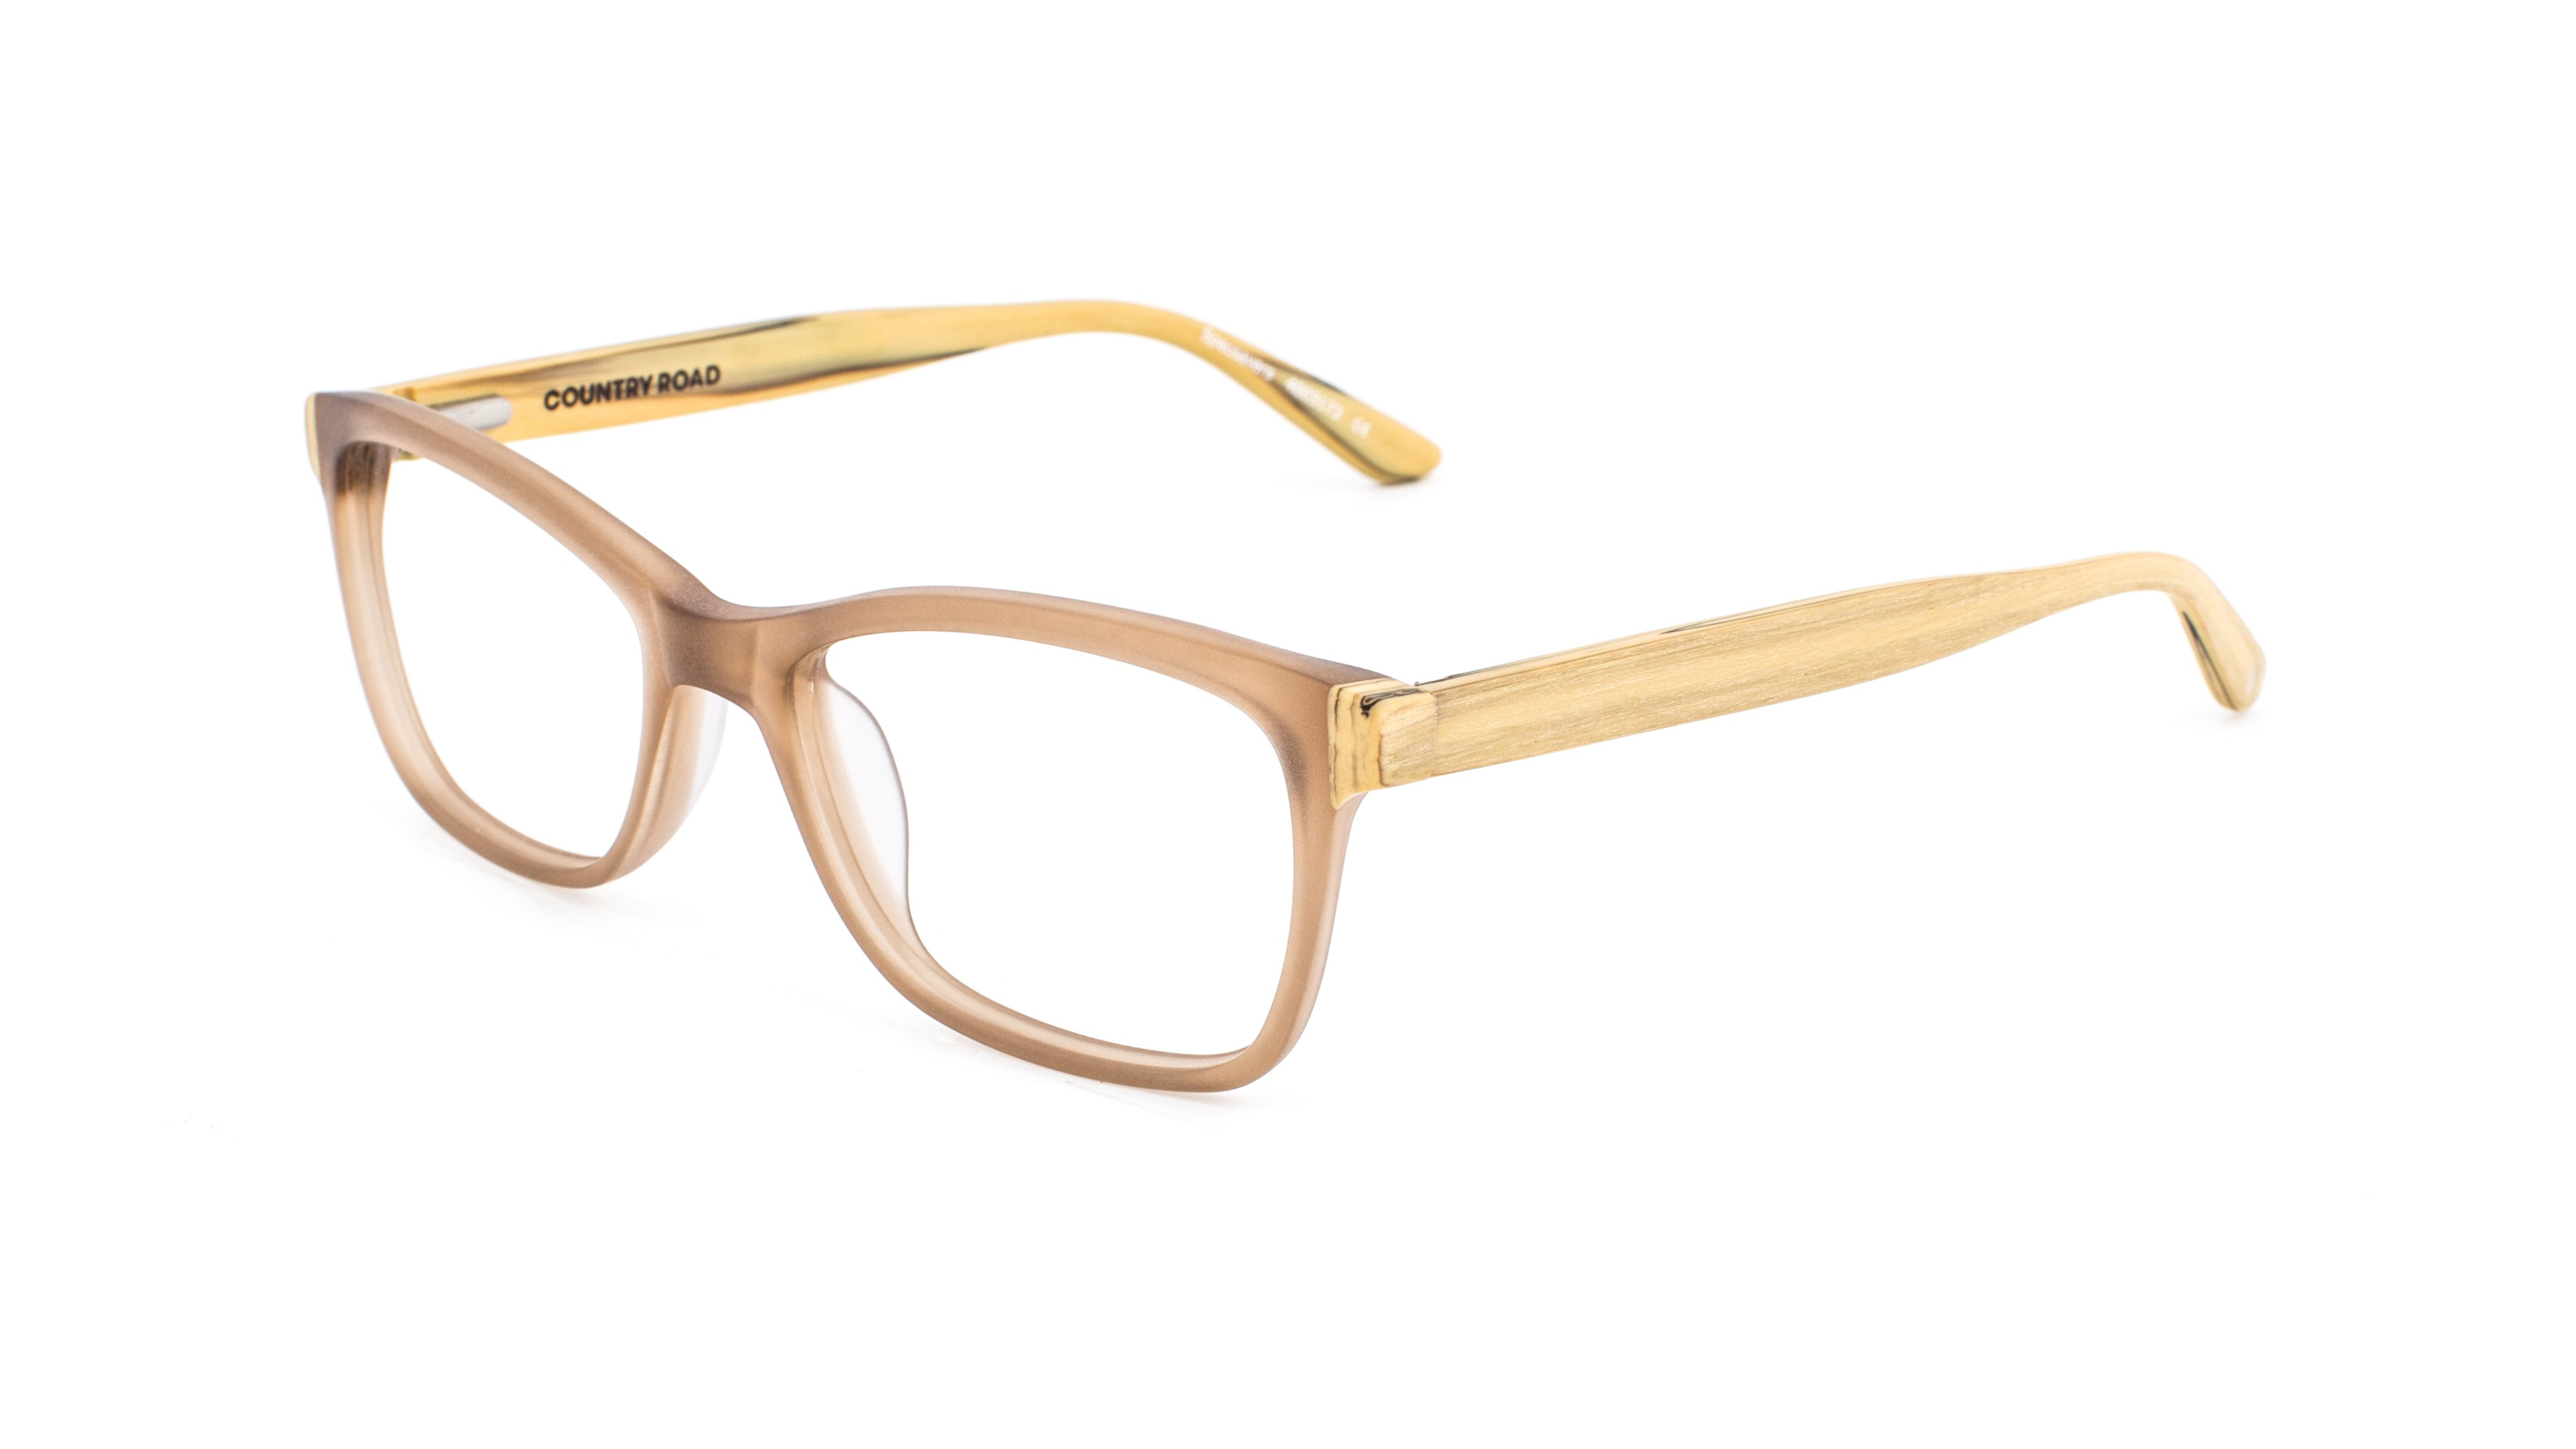 Frame Of Mind - The Specsaver Eyewear Trends of 2015